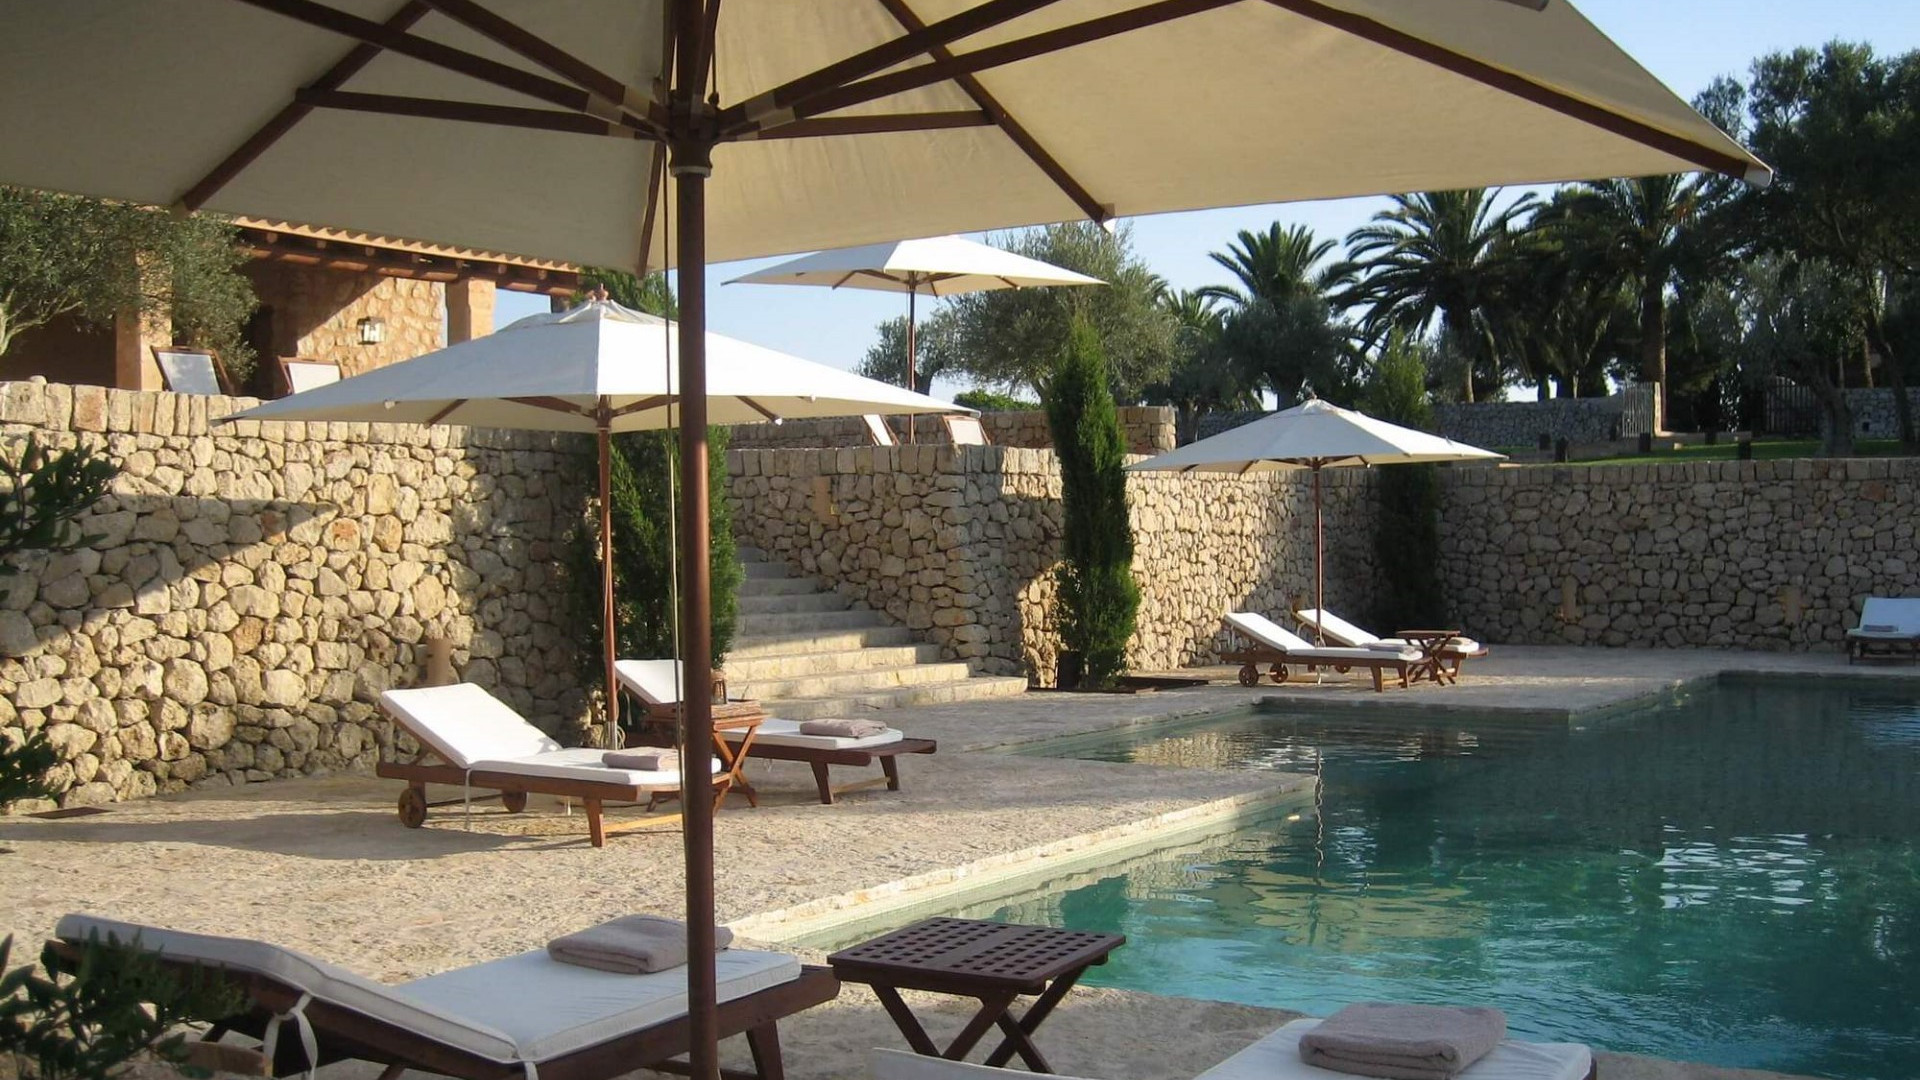 6 Bedroom Villa Porreres Traditional Villa With Private Pool